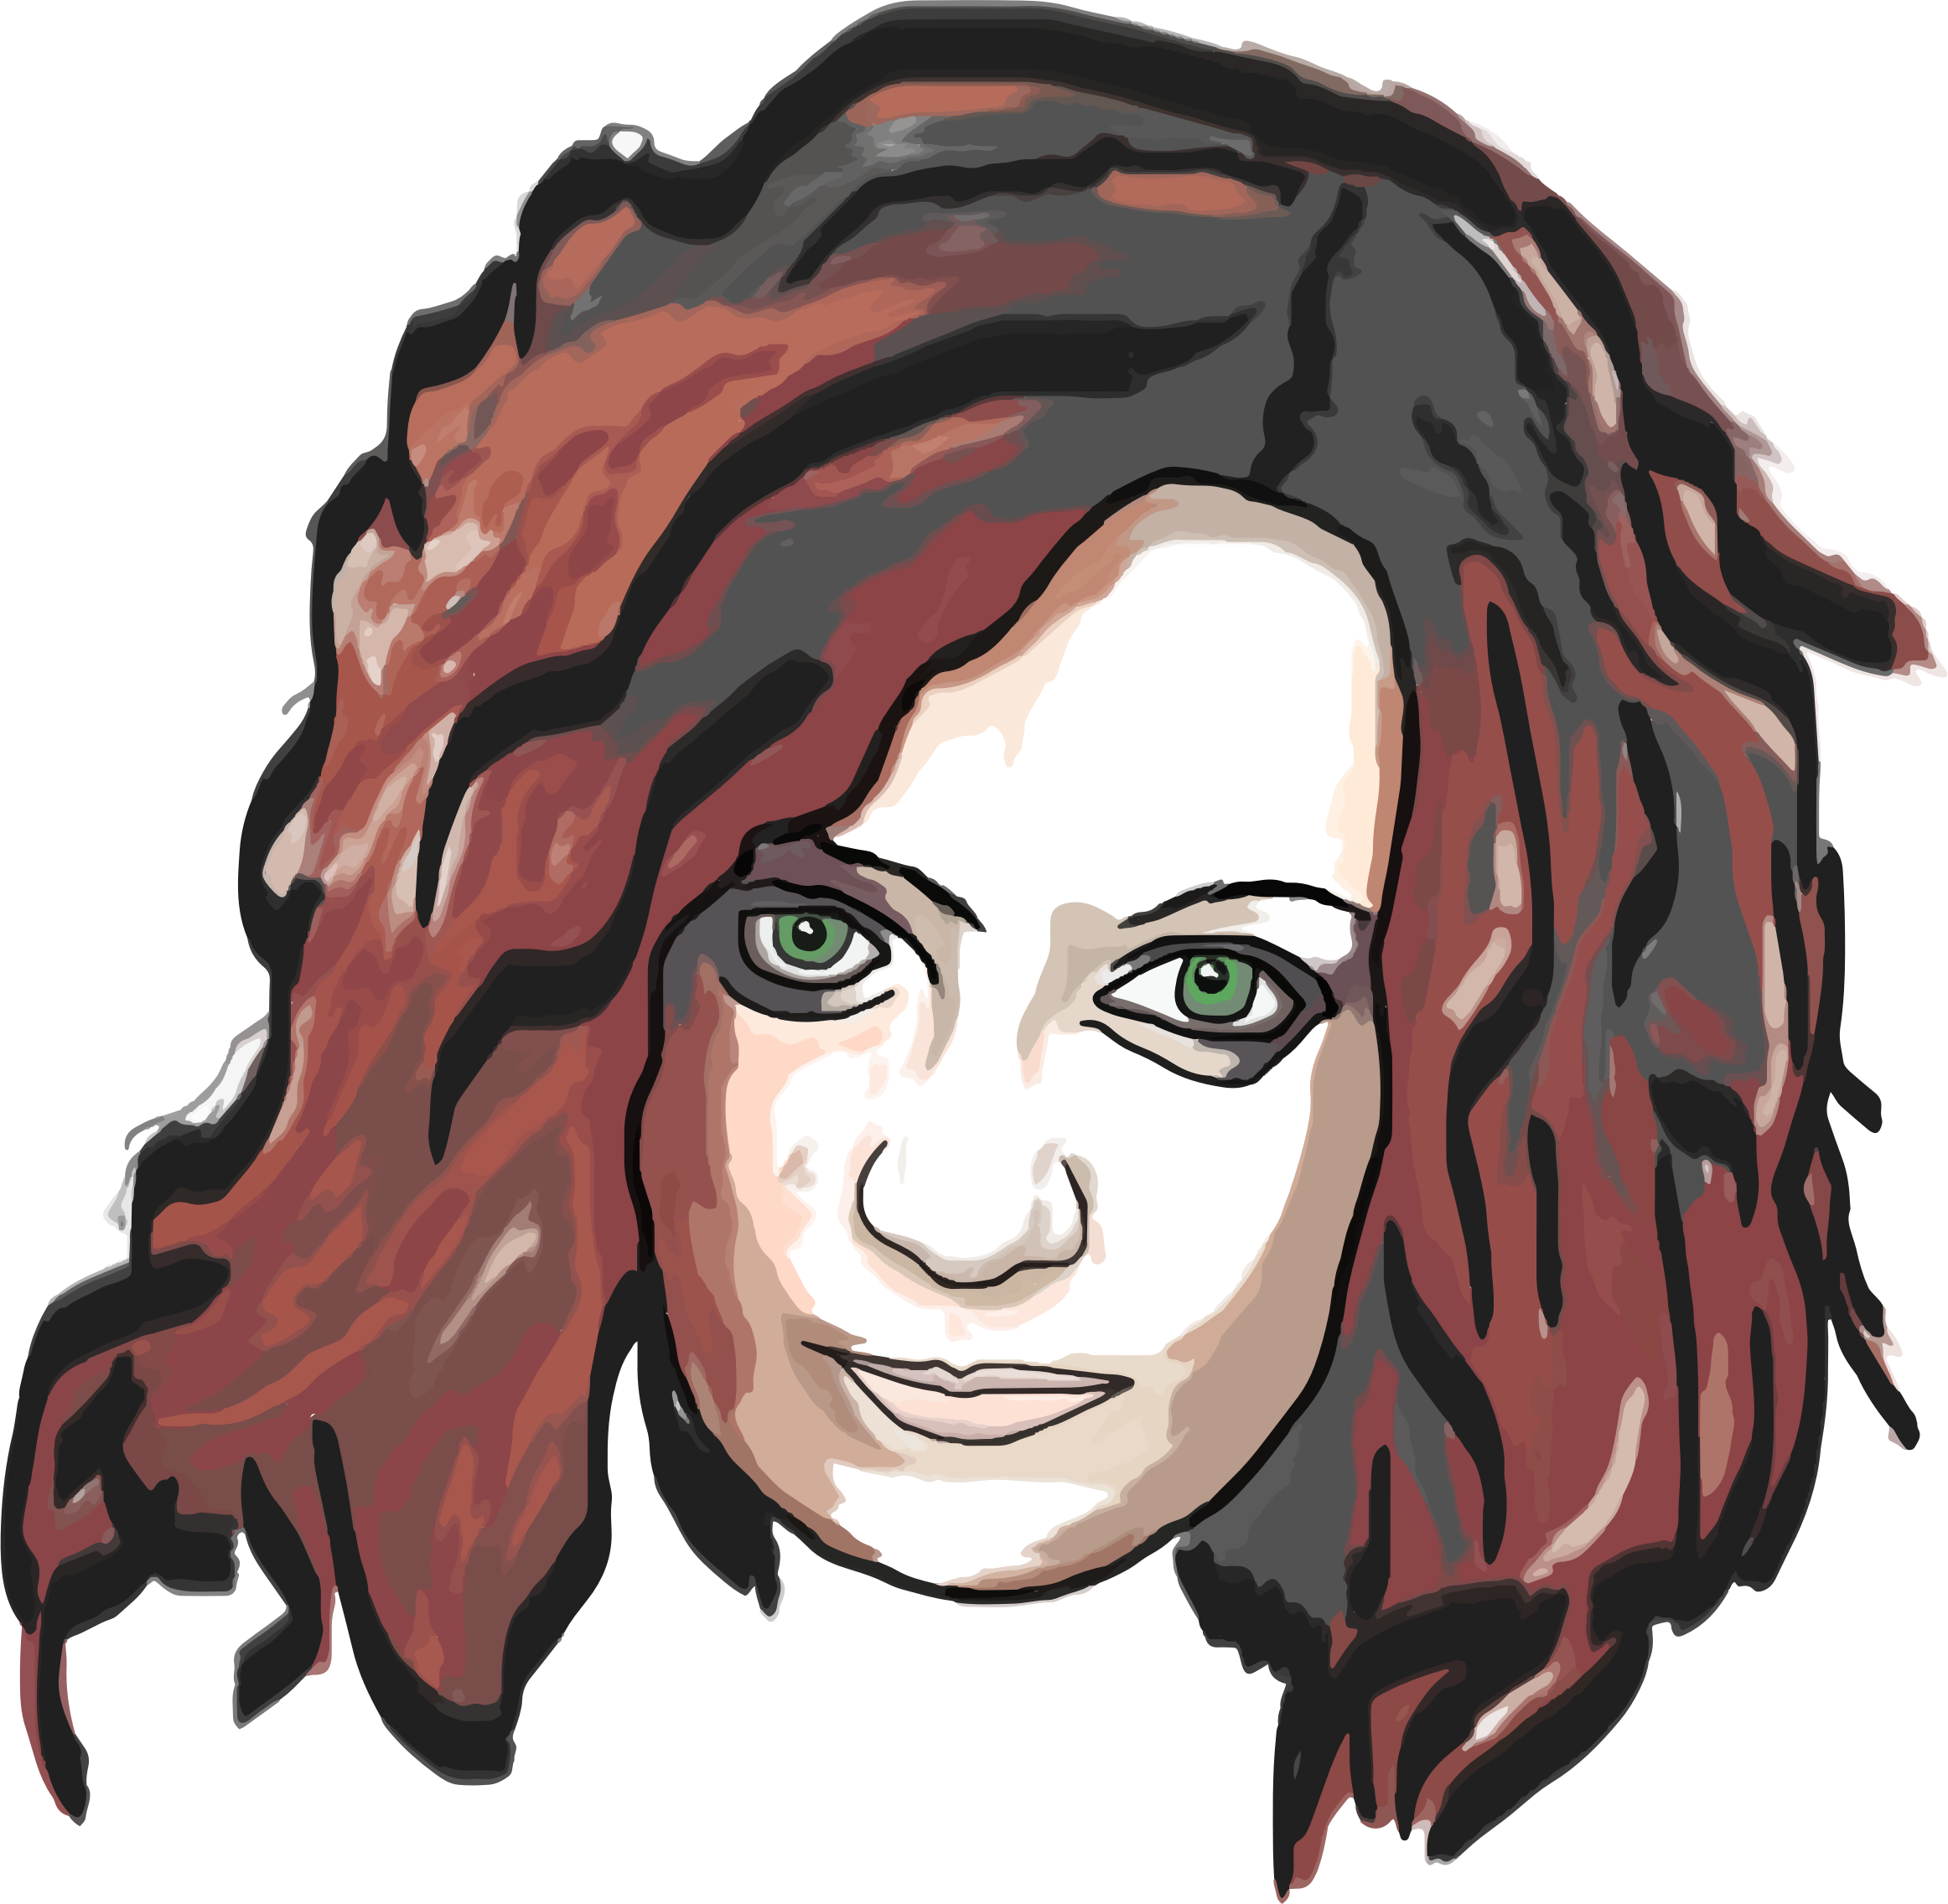 picture download Hair clipart disheveled. Woman big image png